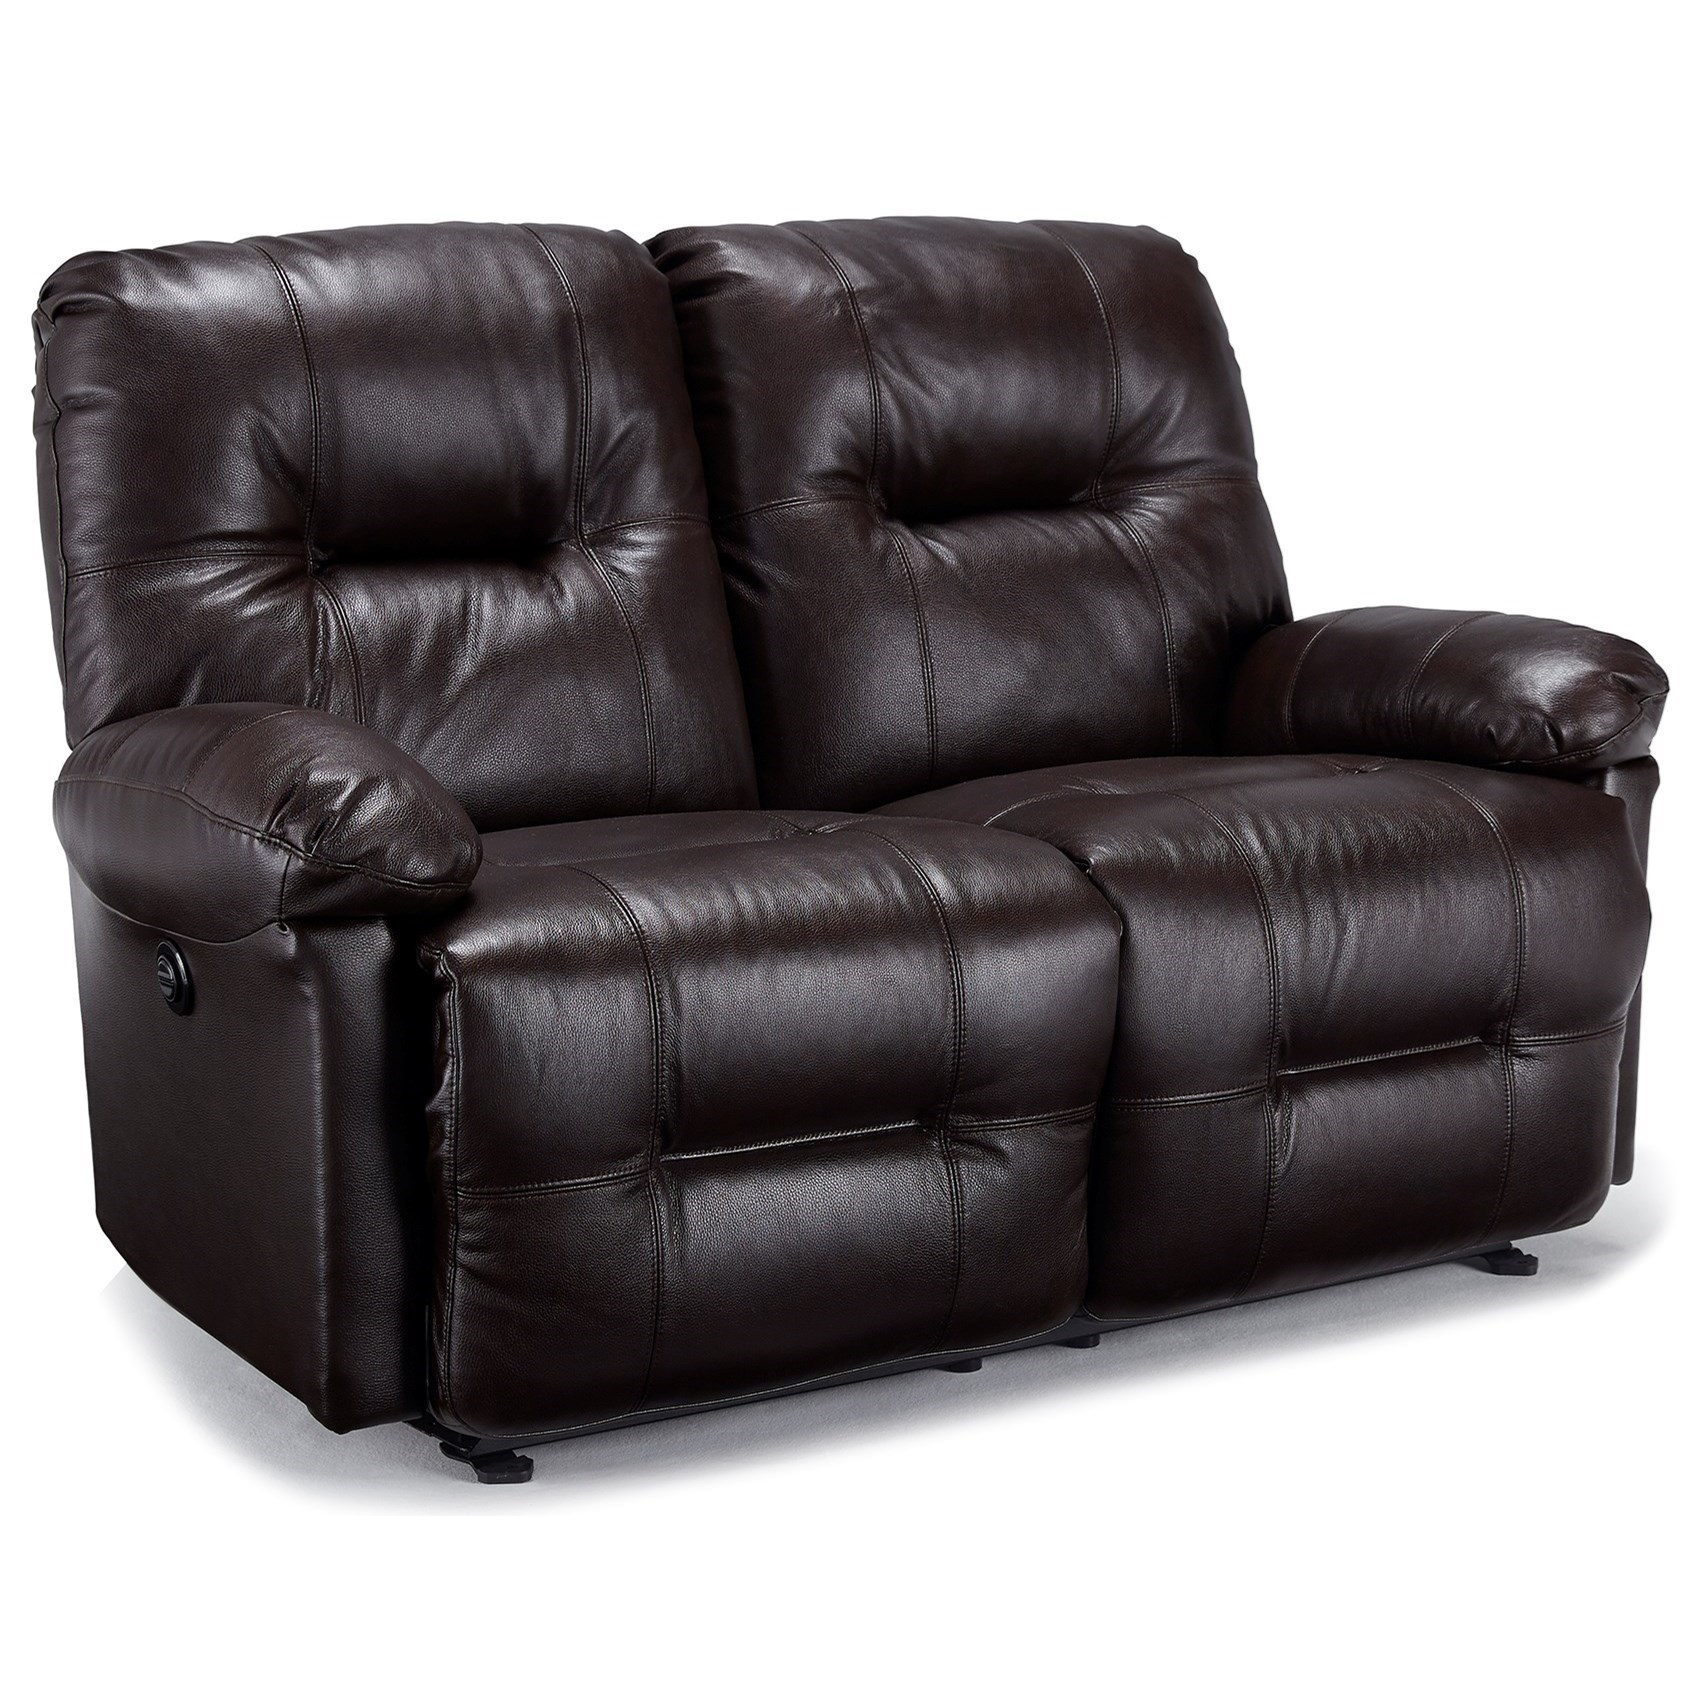 S501 Zaynah Power Reclining Loveseat by Best Home Furnishings at Baer's Furniture